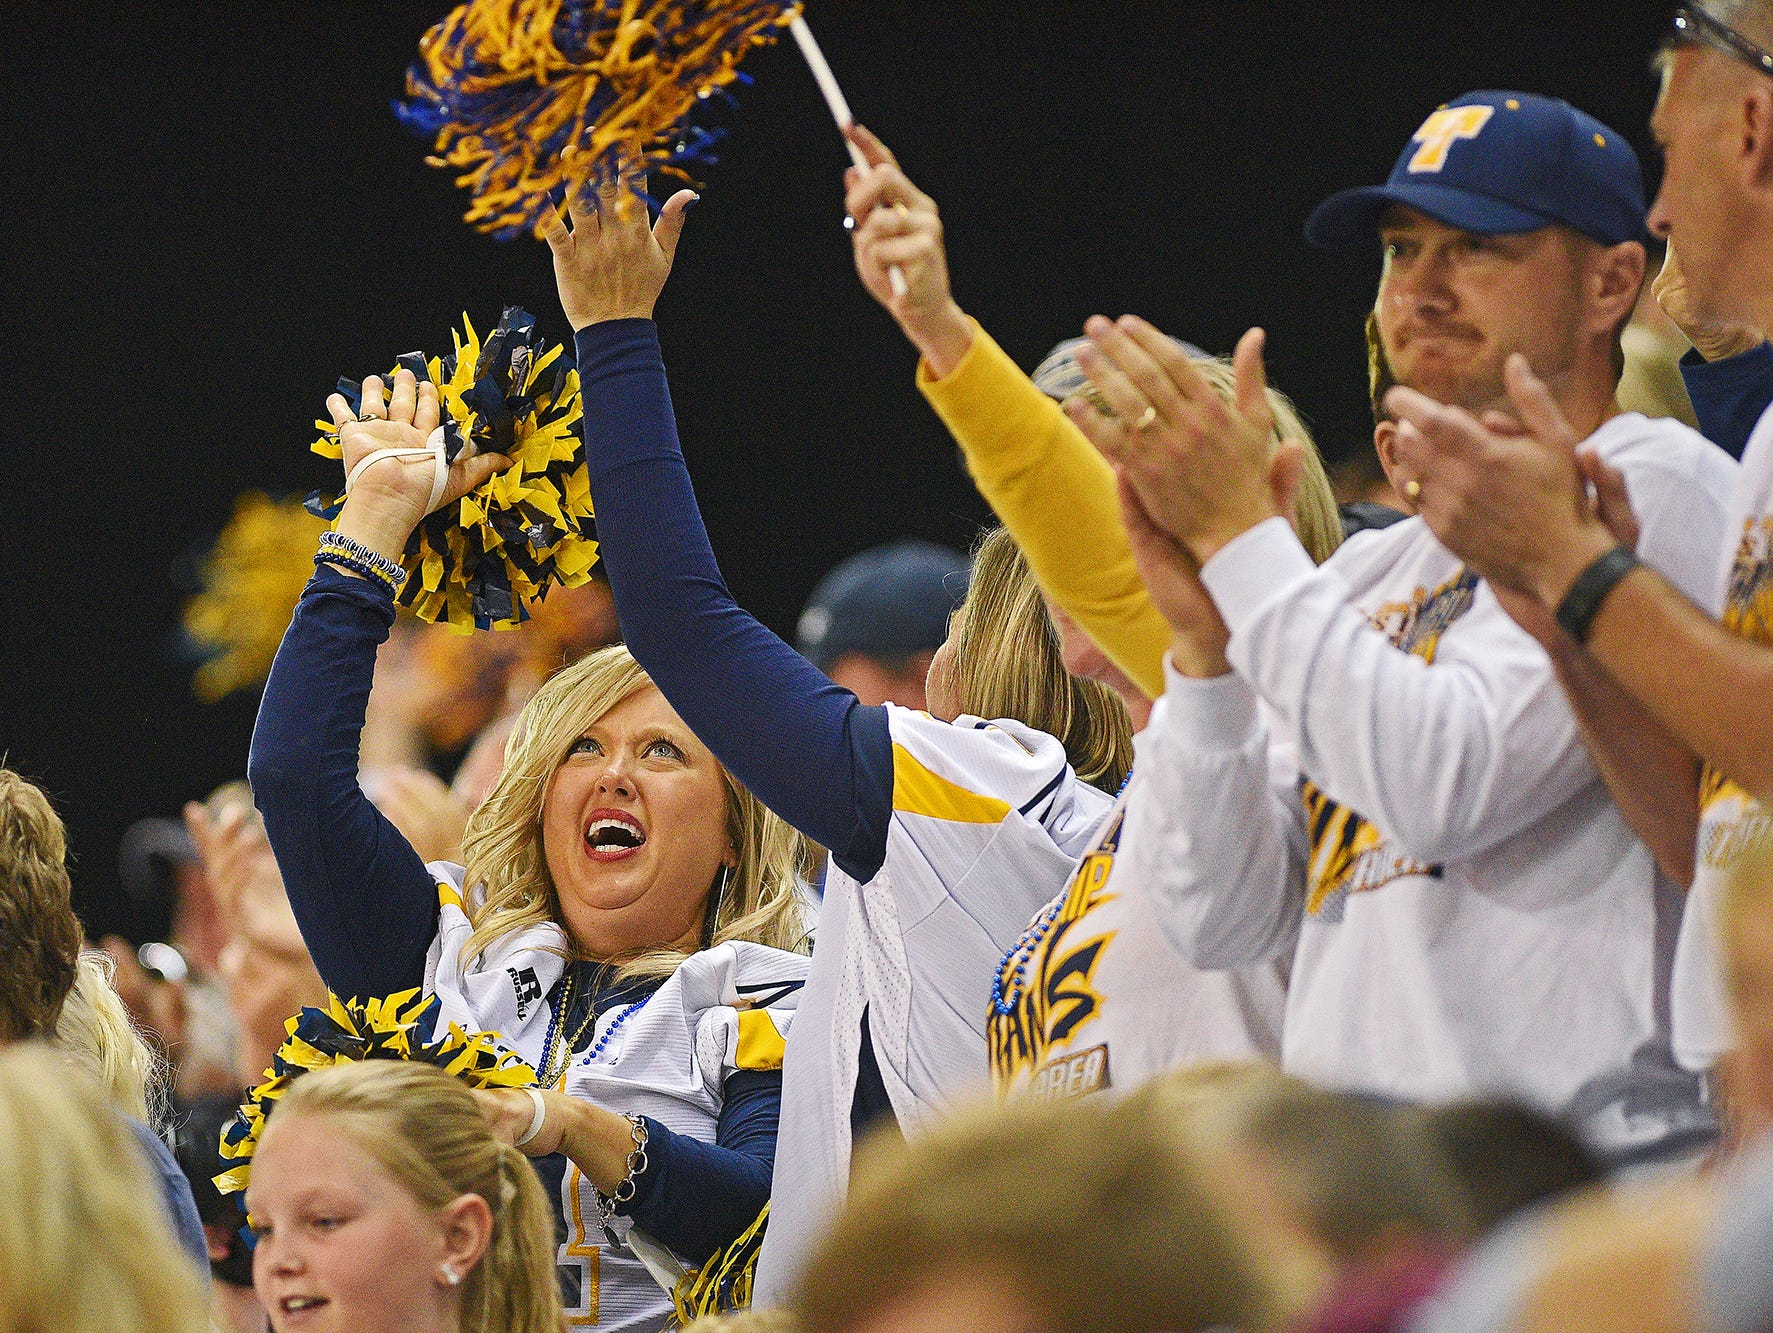 Tea Area fans cheer on their team during the 2016 South Dakota State Class 11A Football Championship game against Madison Saturday, Nov. 12, 2016, at the DakotaDome on the University of South Dakota campus in Vermillion, S.D.